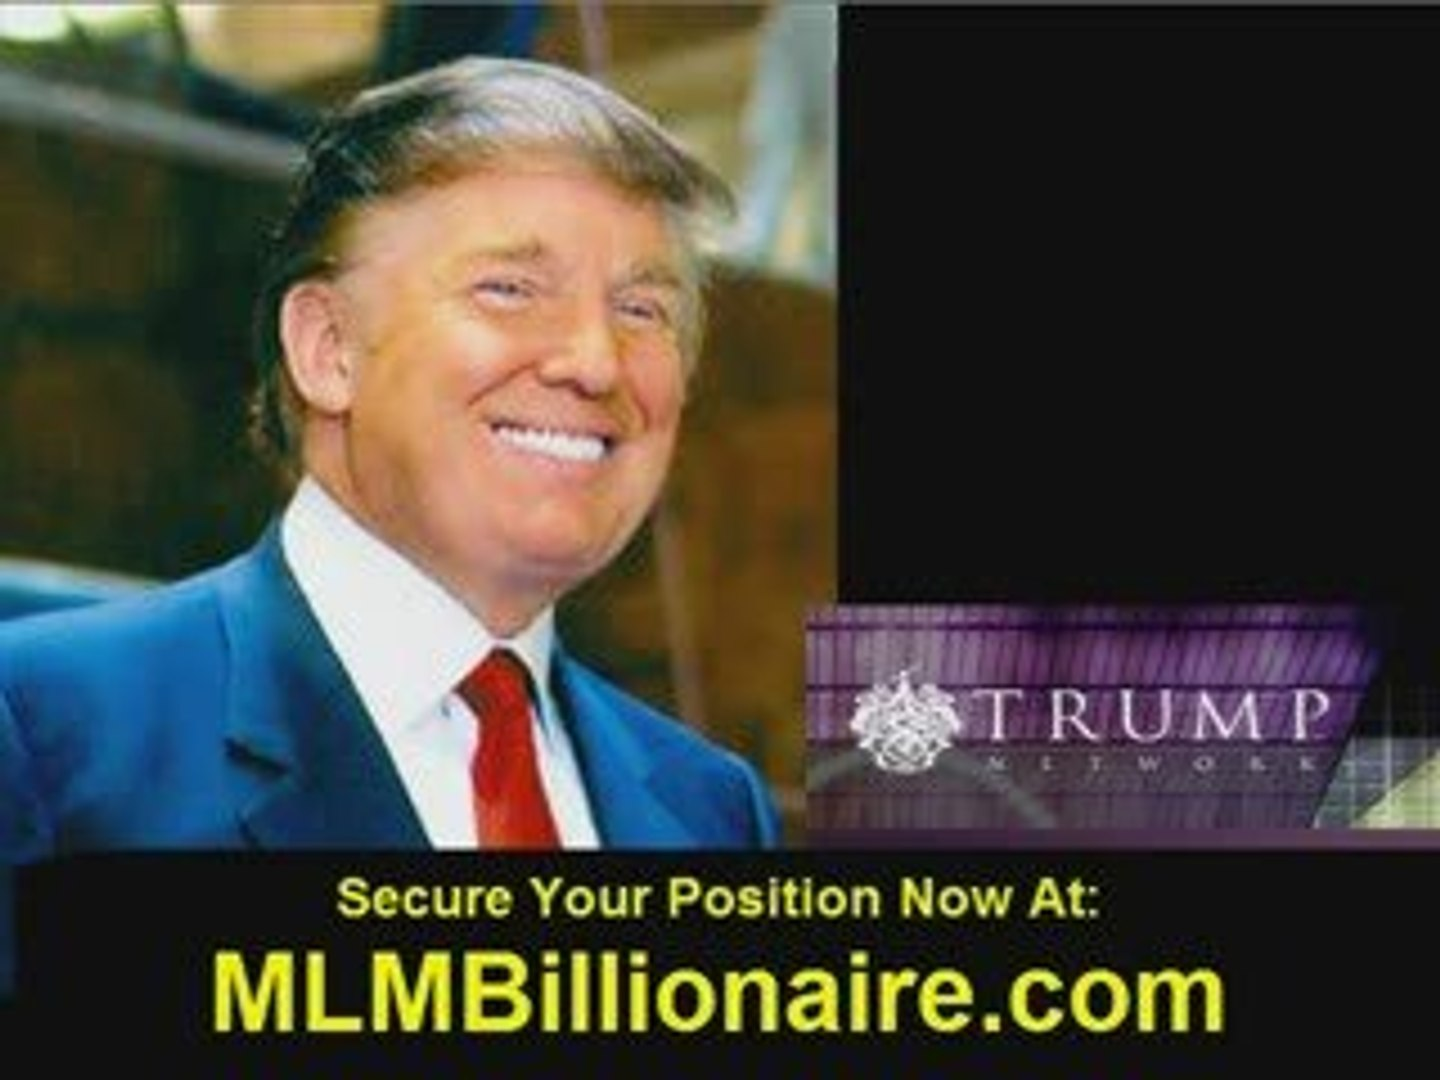 Donald Trump and The Trump Network Marketing Plan